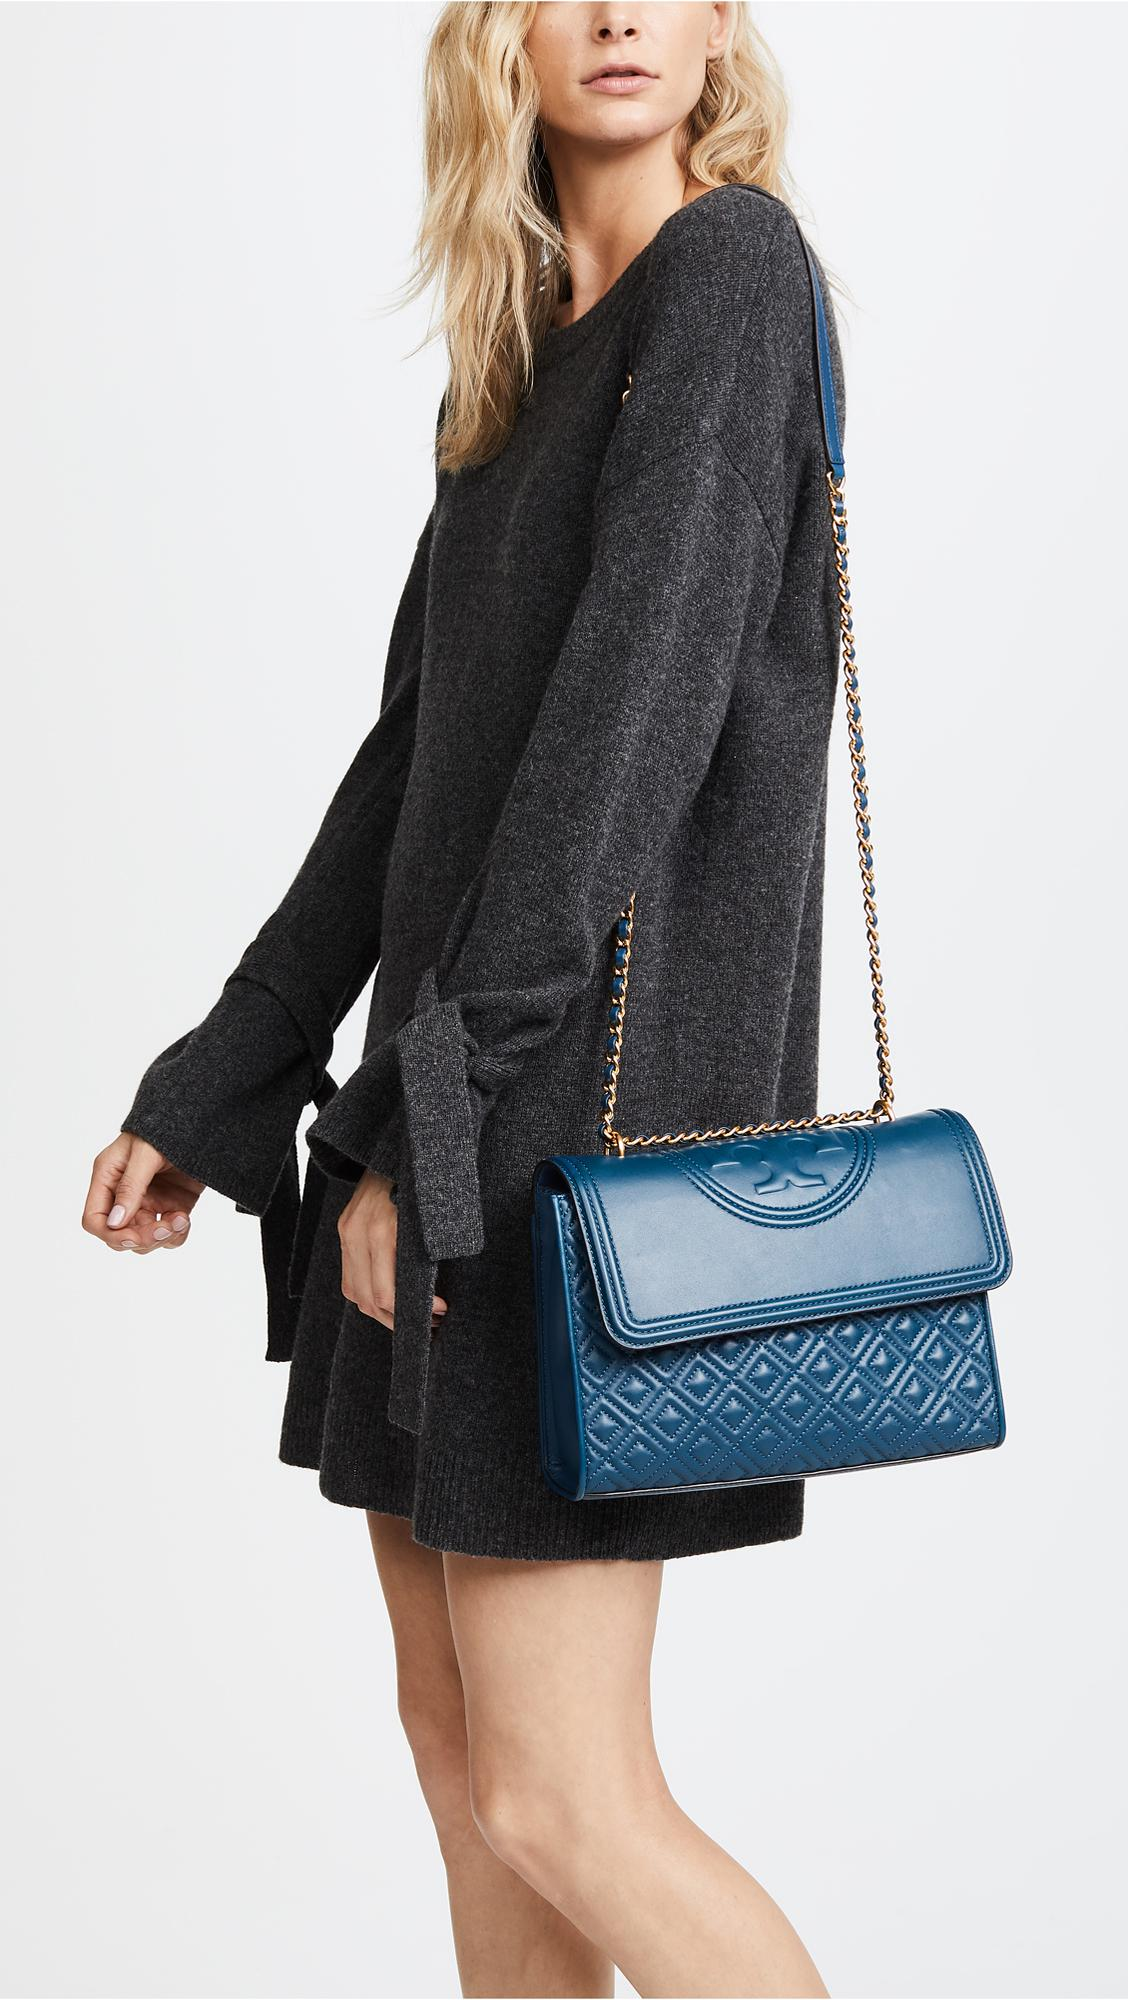 Fleming convertible shoulder bag - Blue Tory Burch 1RIcMZEISn